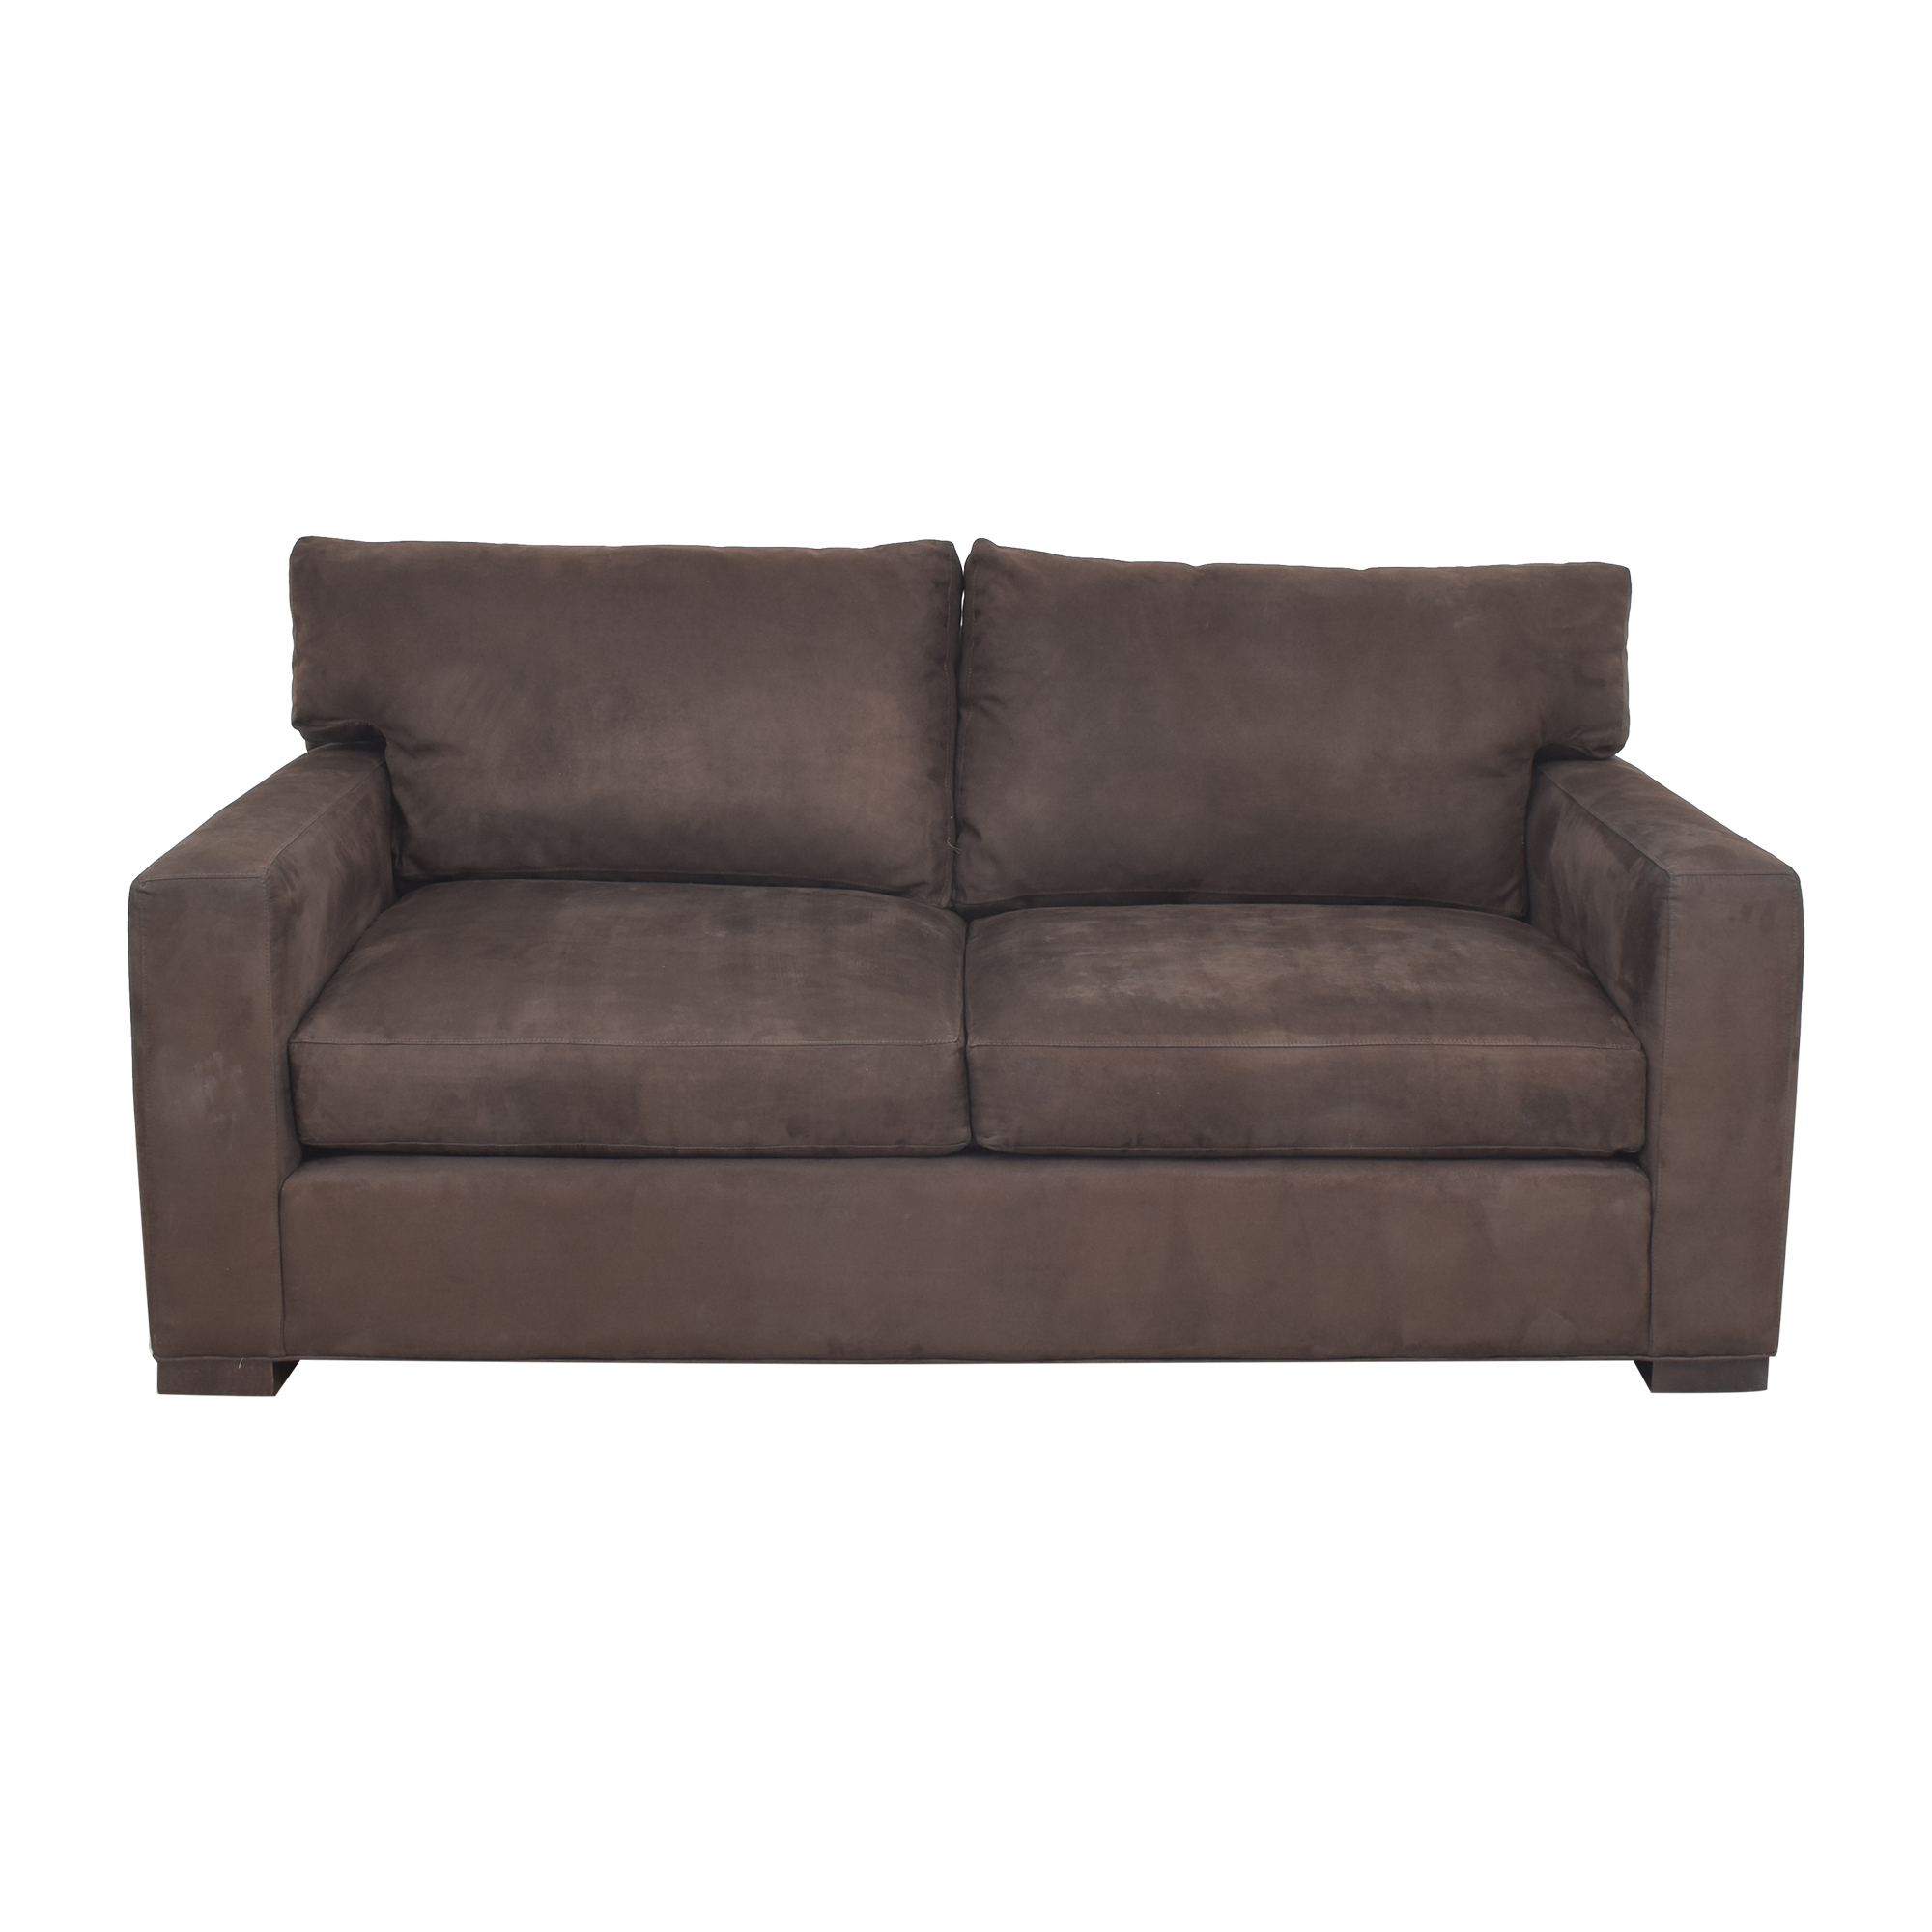 Crate & Barrel Crate and Barrel Axis II Sofa price